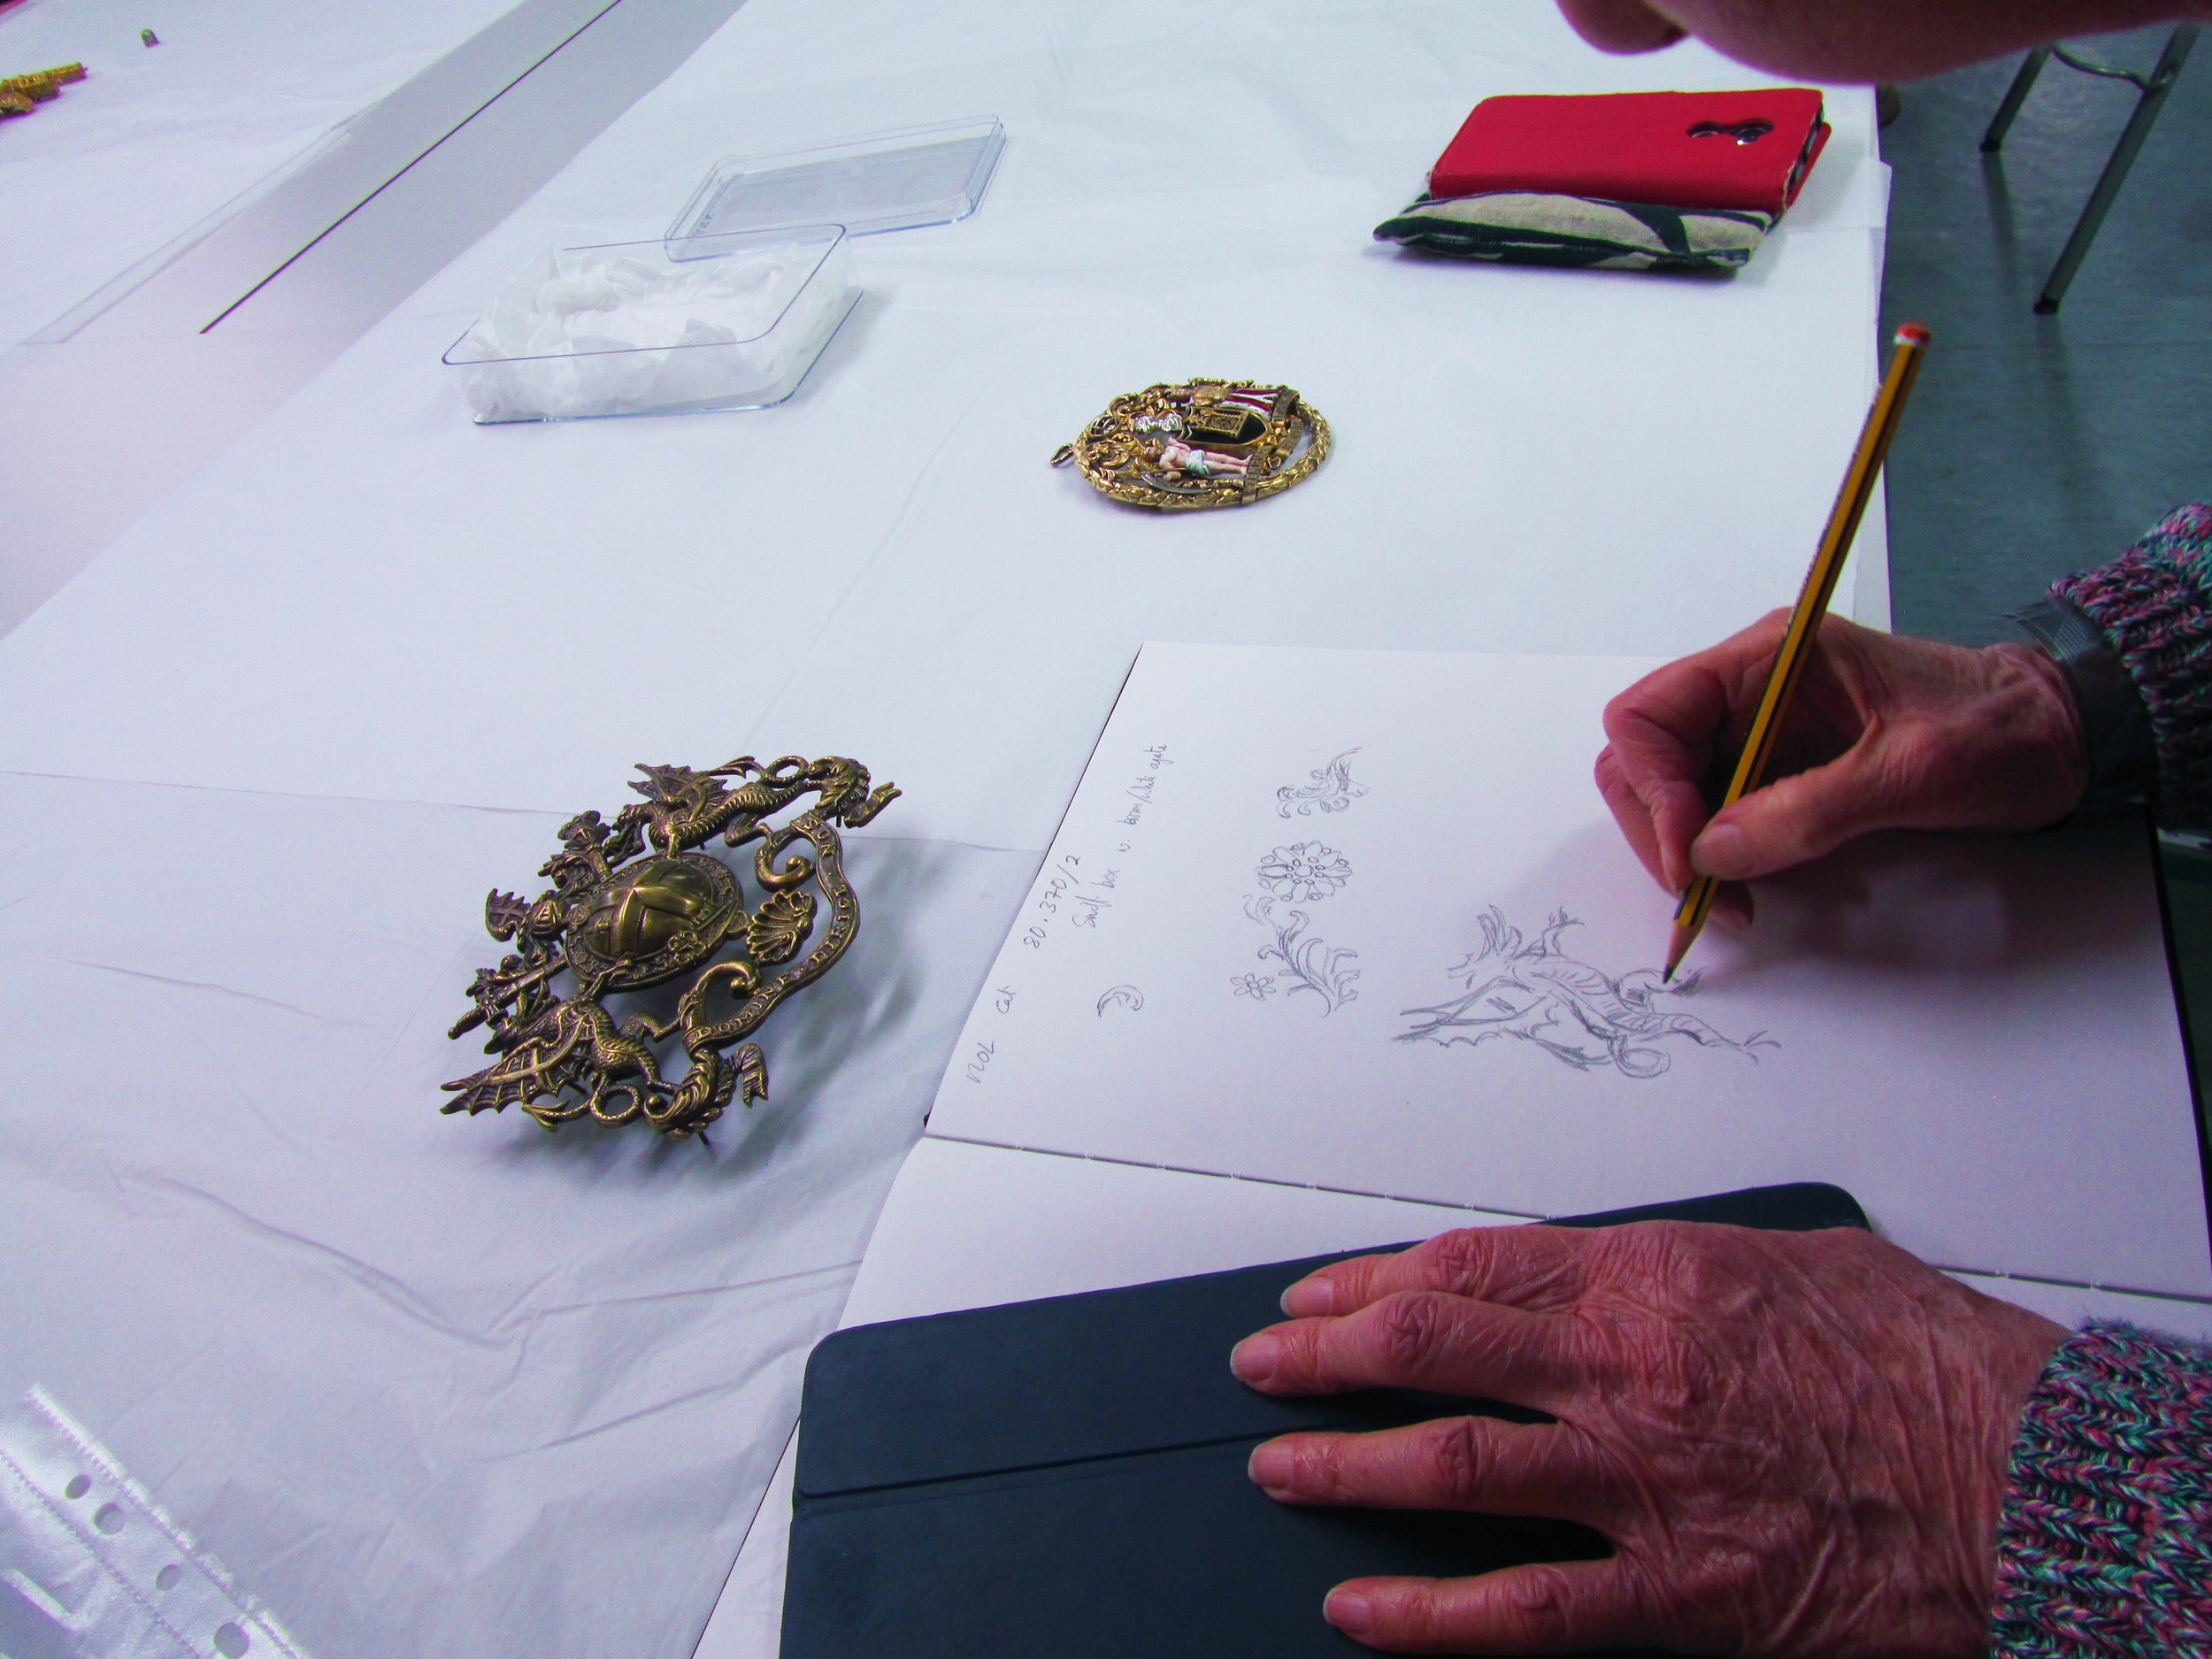 Drawing the real object  rather than just photographing to record important details and understand how it was made.